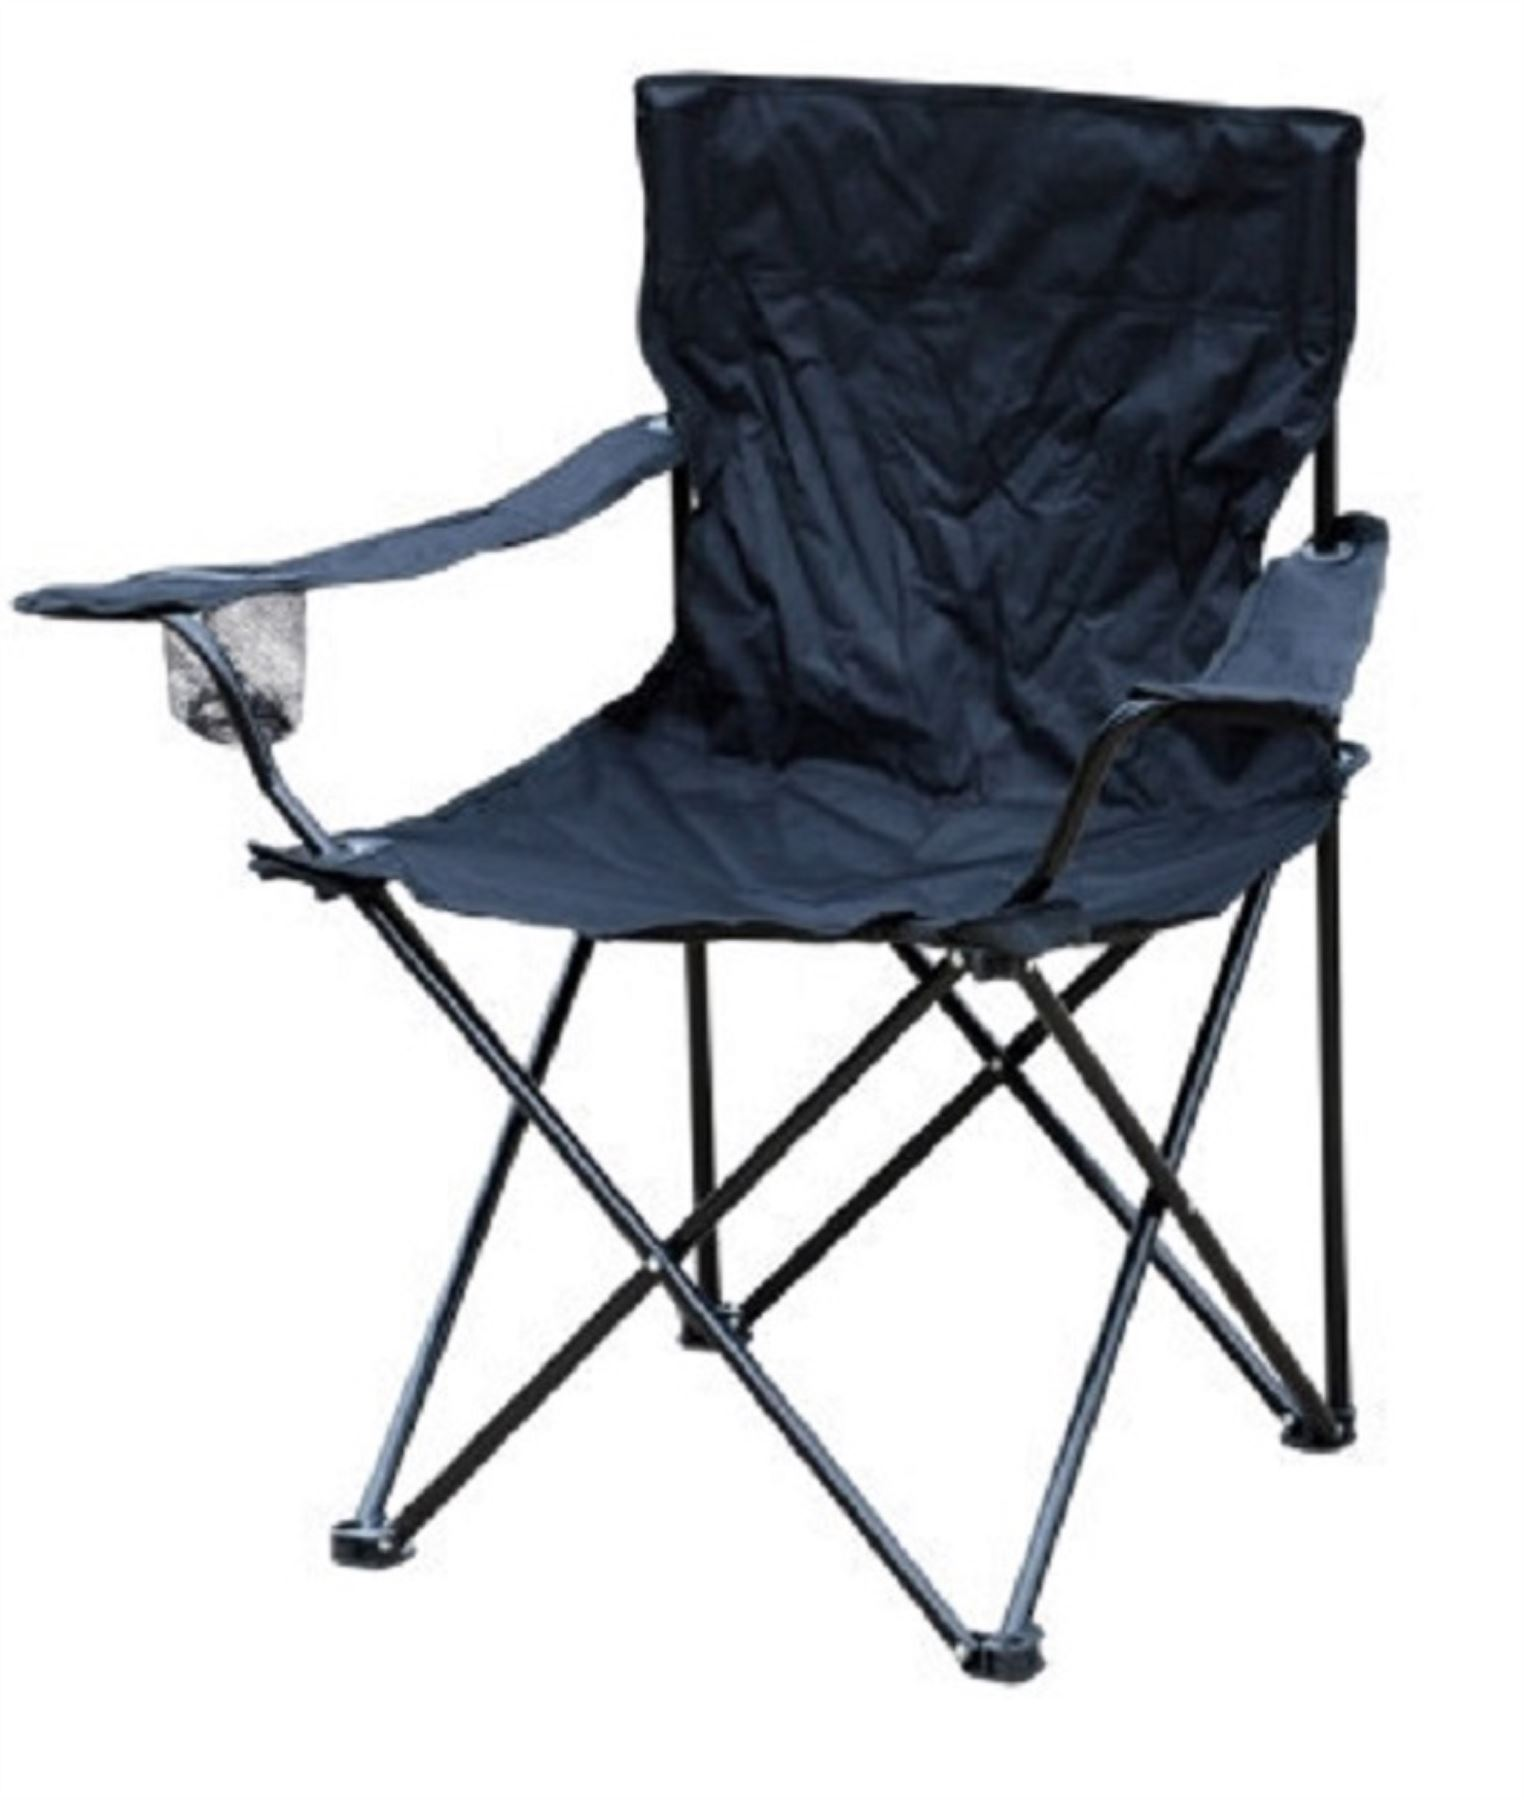 Kingfisher Folding Outdoor Camping Chair Fishing Foldable